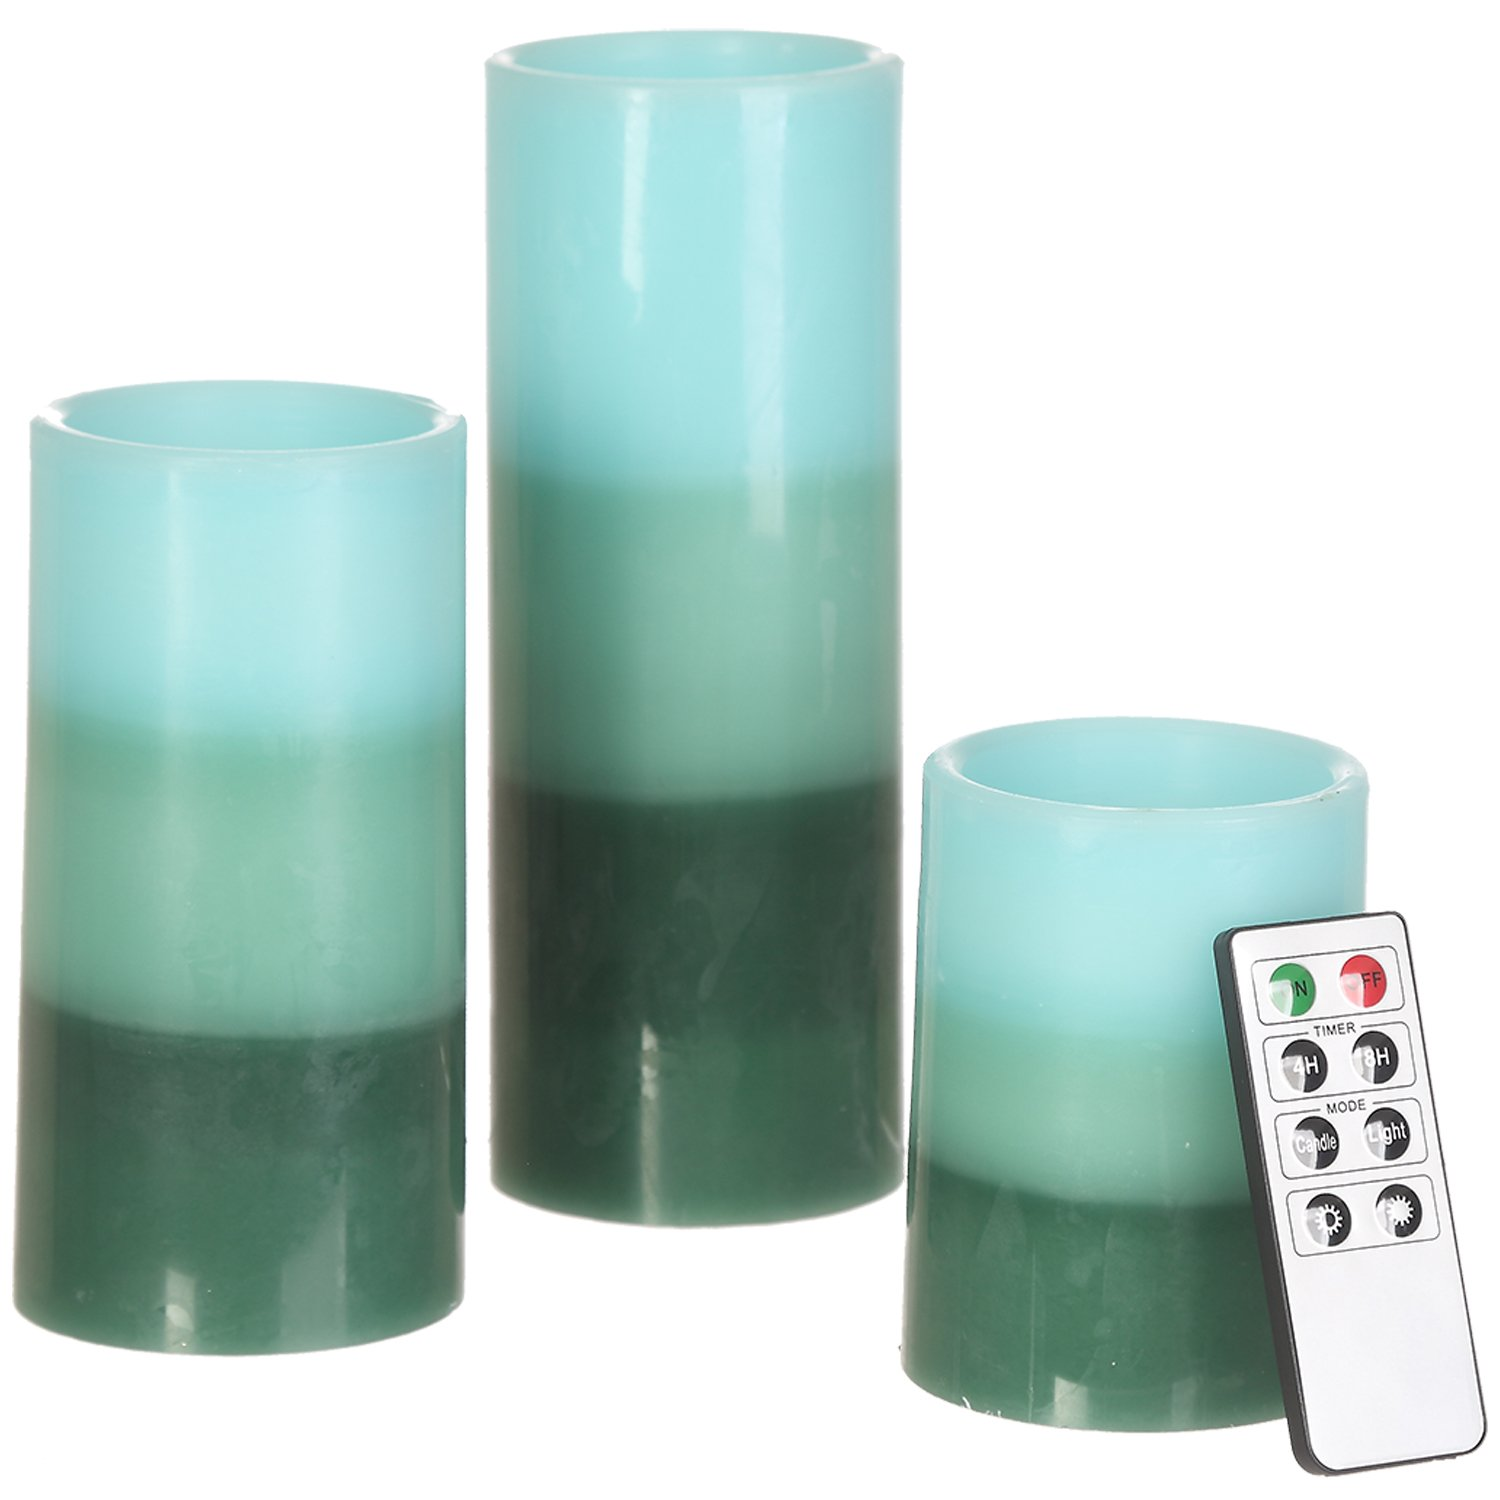 CEDAR HOME Flameless Candles LED Battery Powered Pillar Tealight Real Scented Wax Remote, Pack of 3, Teal